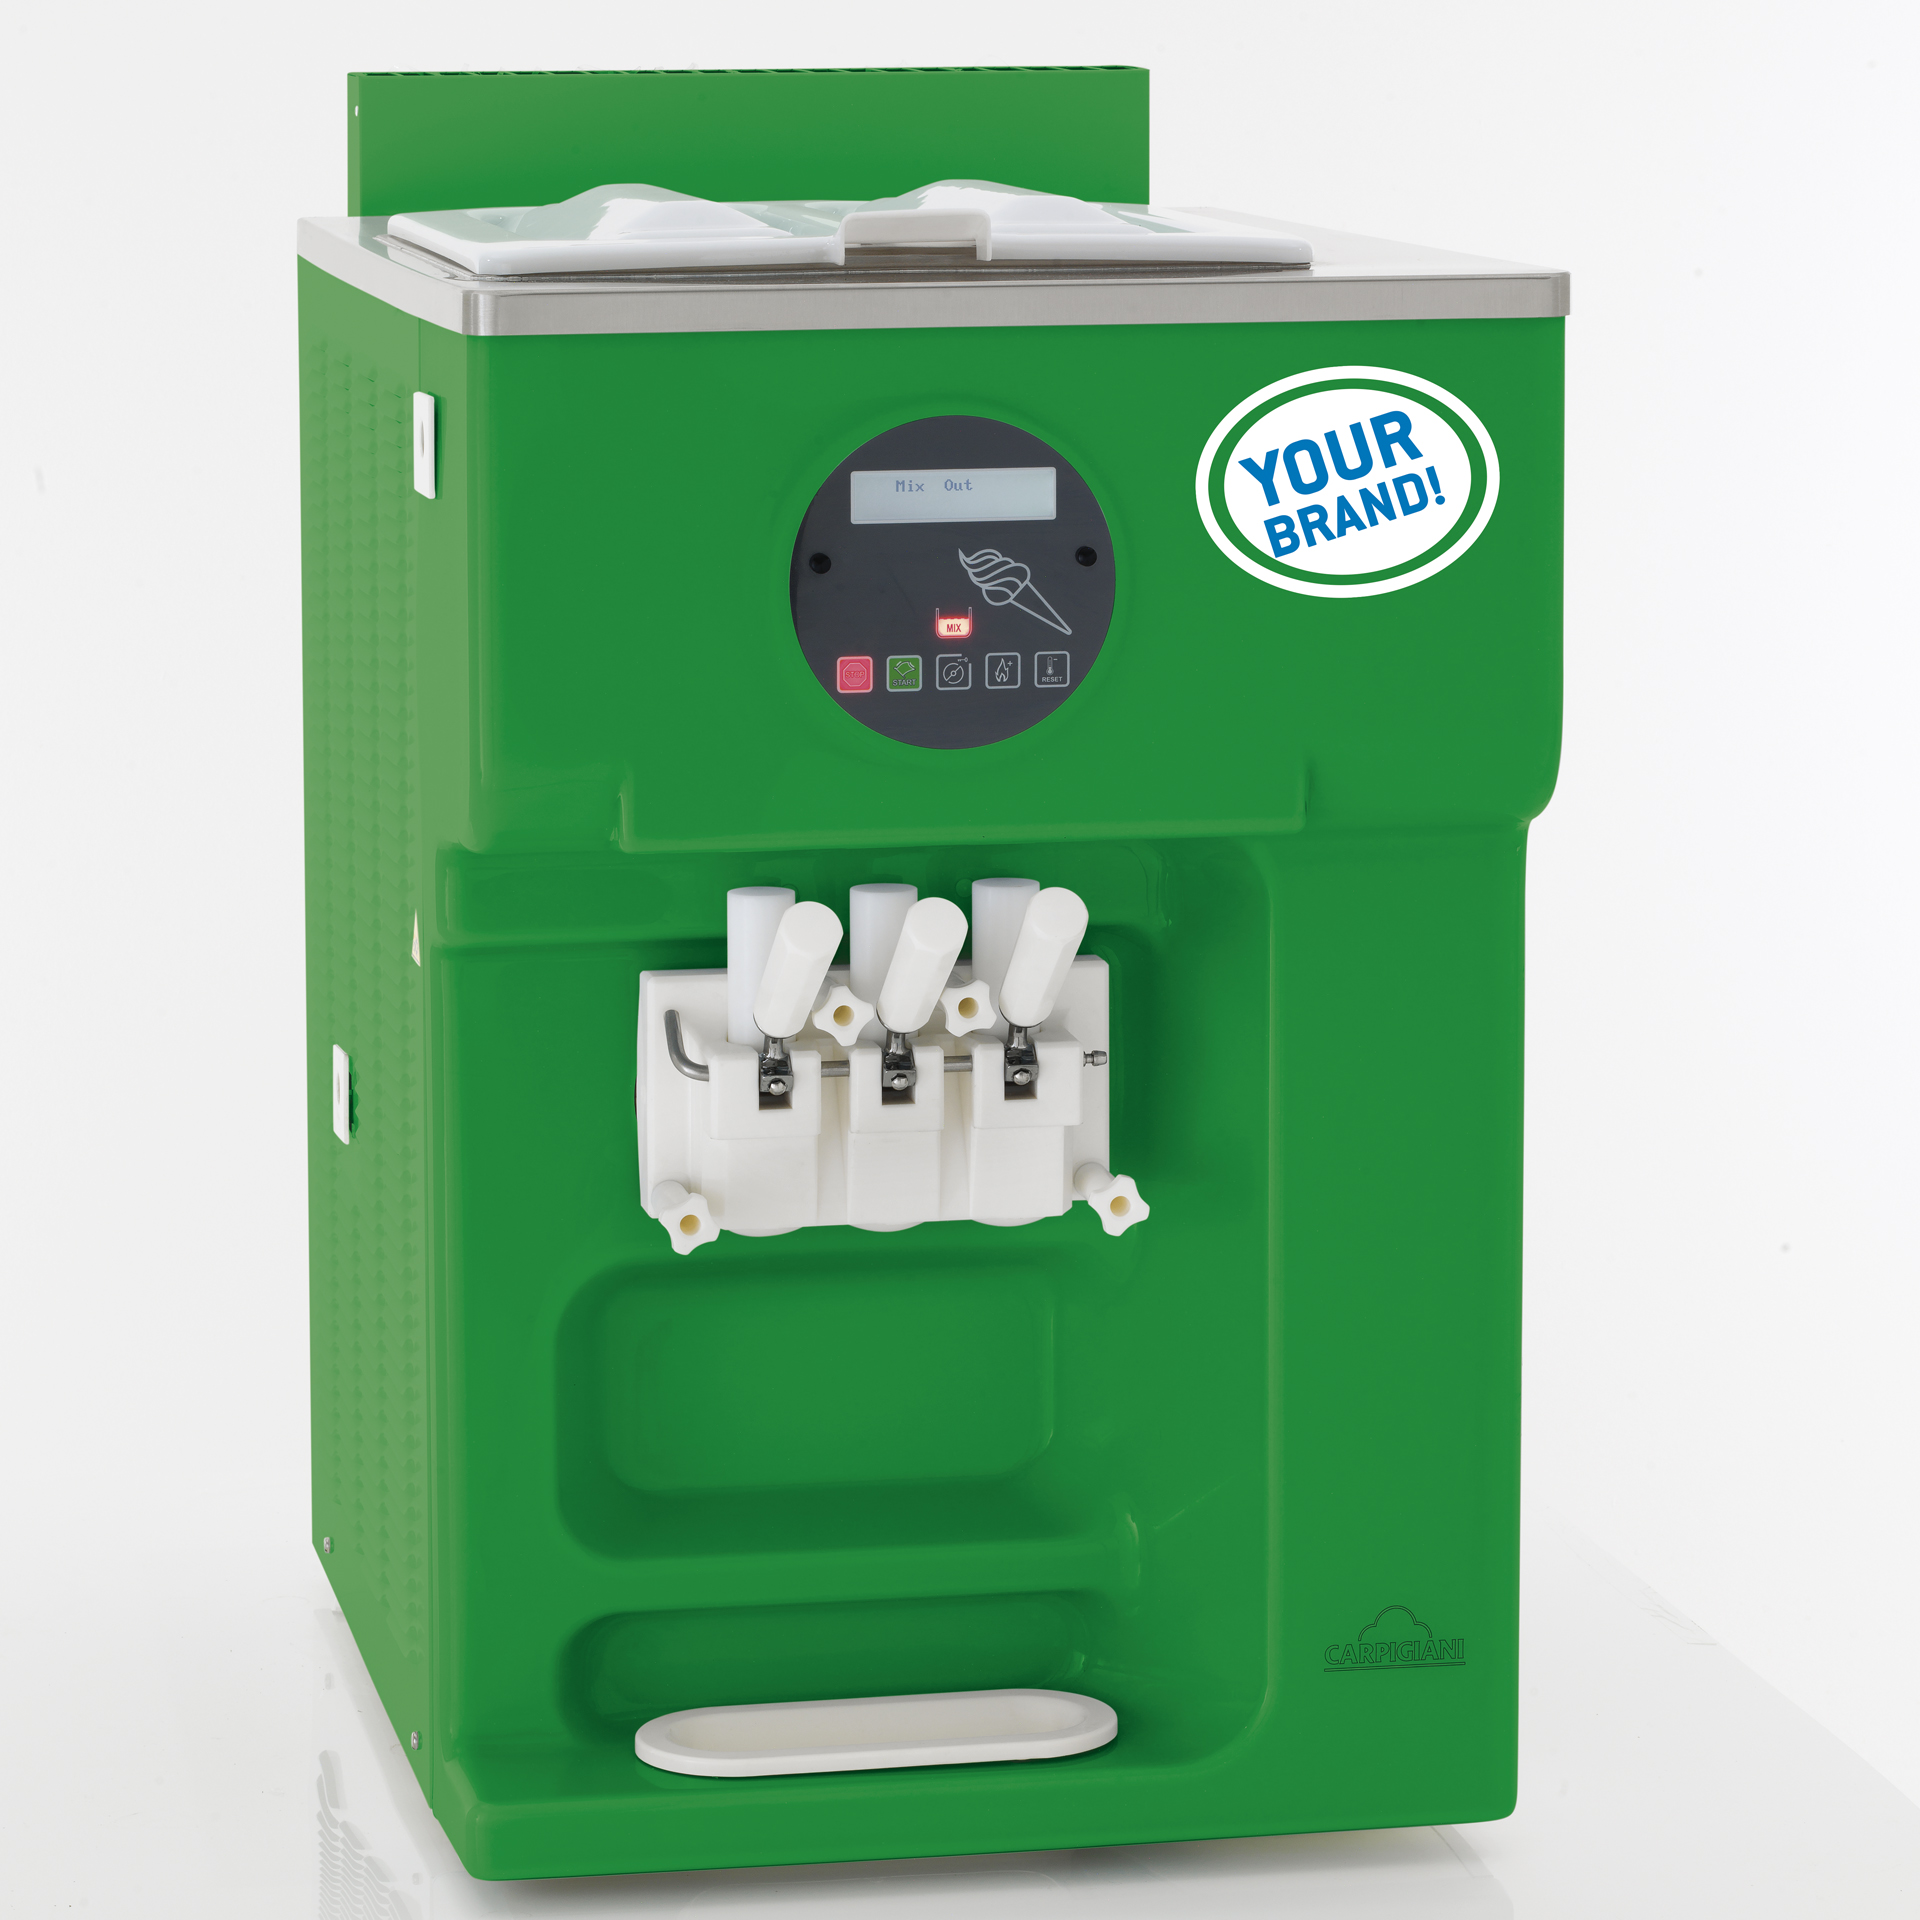 Carpigiani Soft Serve Machine - Total Only You and Your Brand Personalization